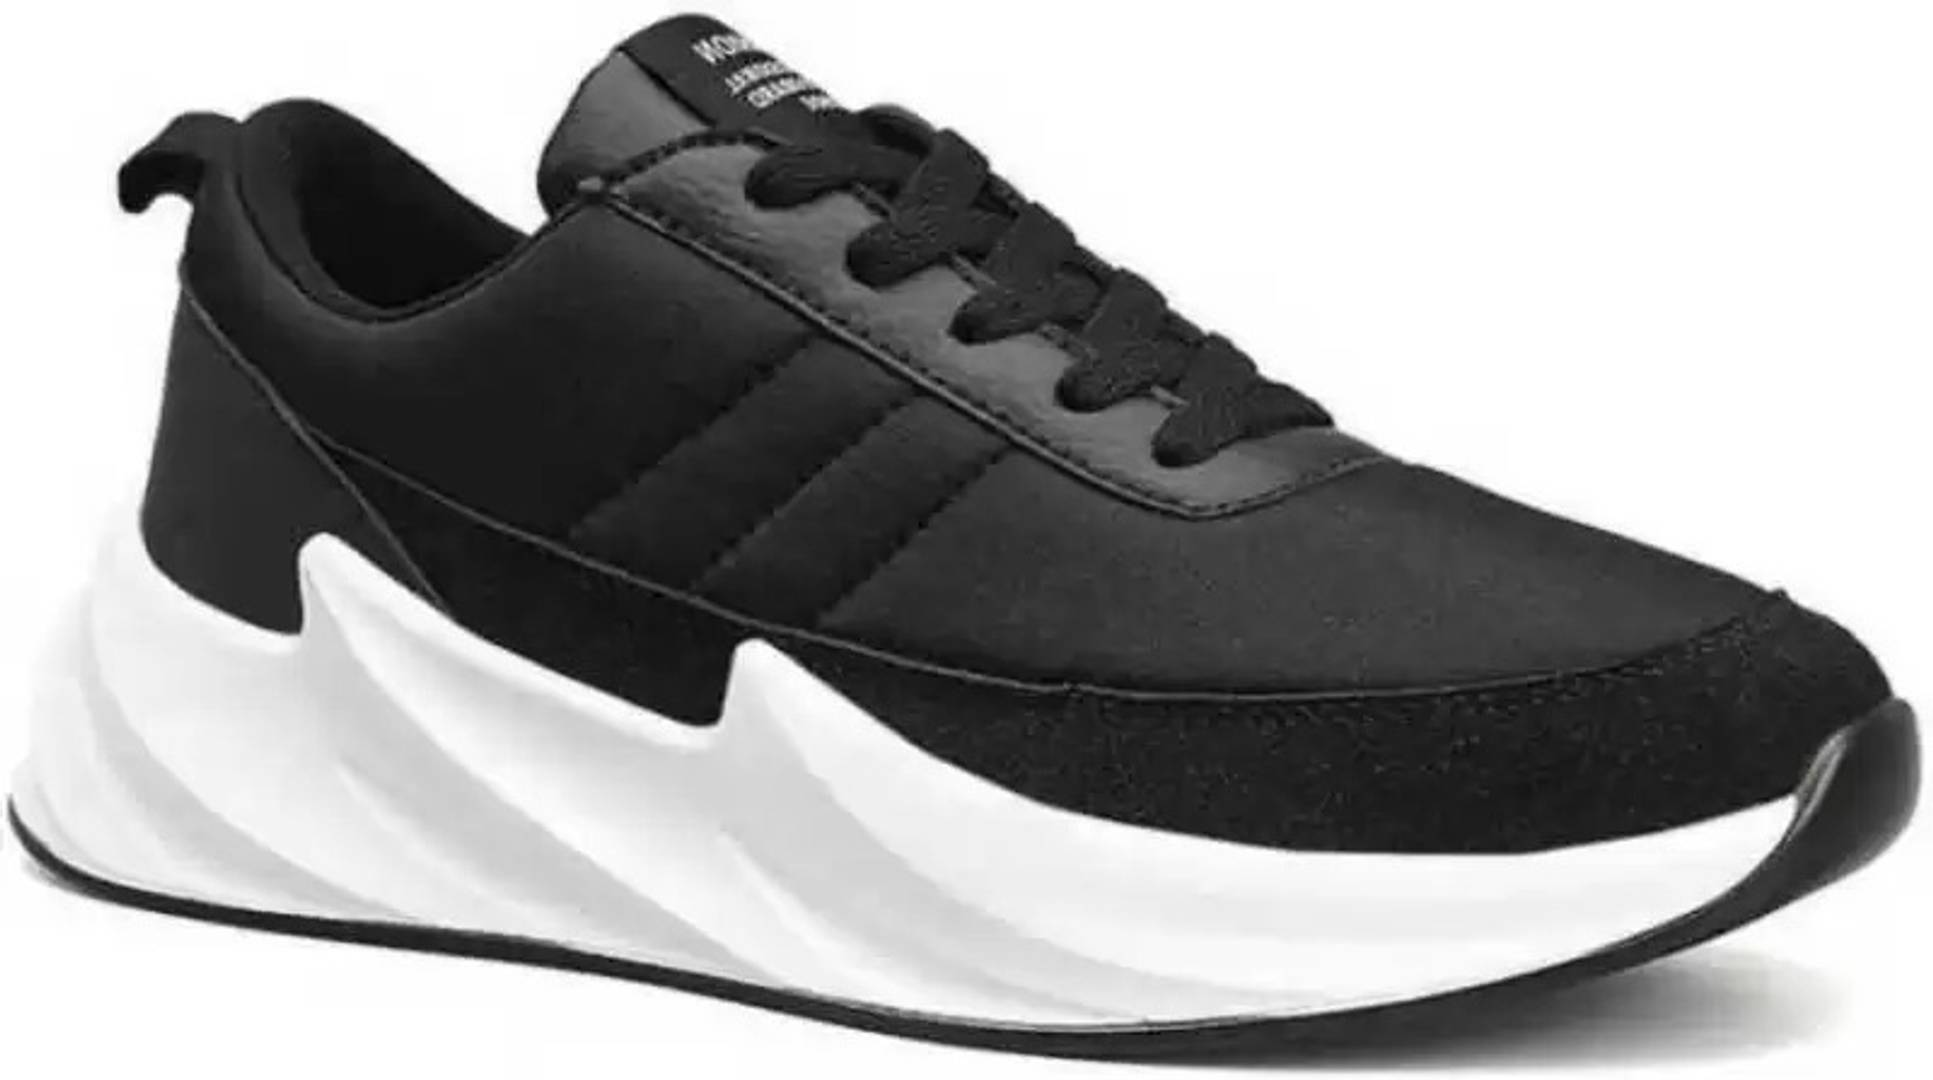 Men's Stylish and Trendy Black Solid Synthetic Casual Sneakers